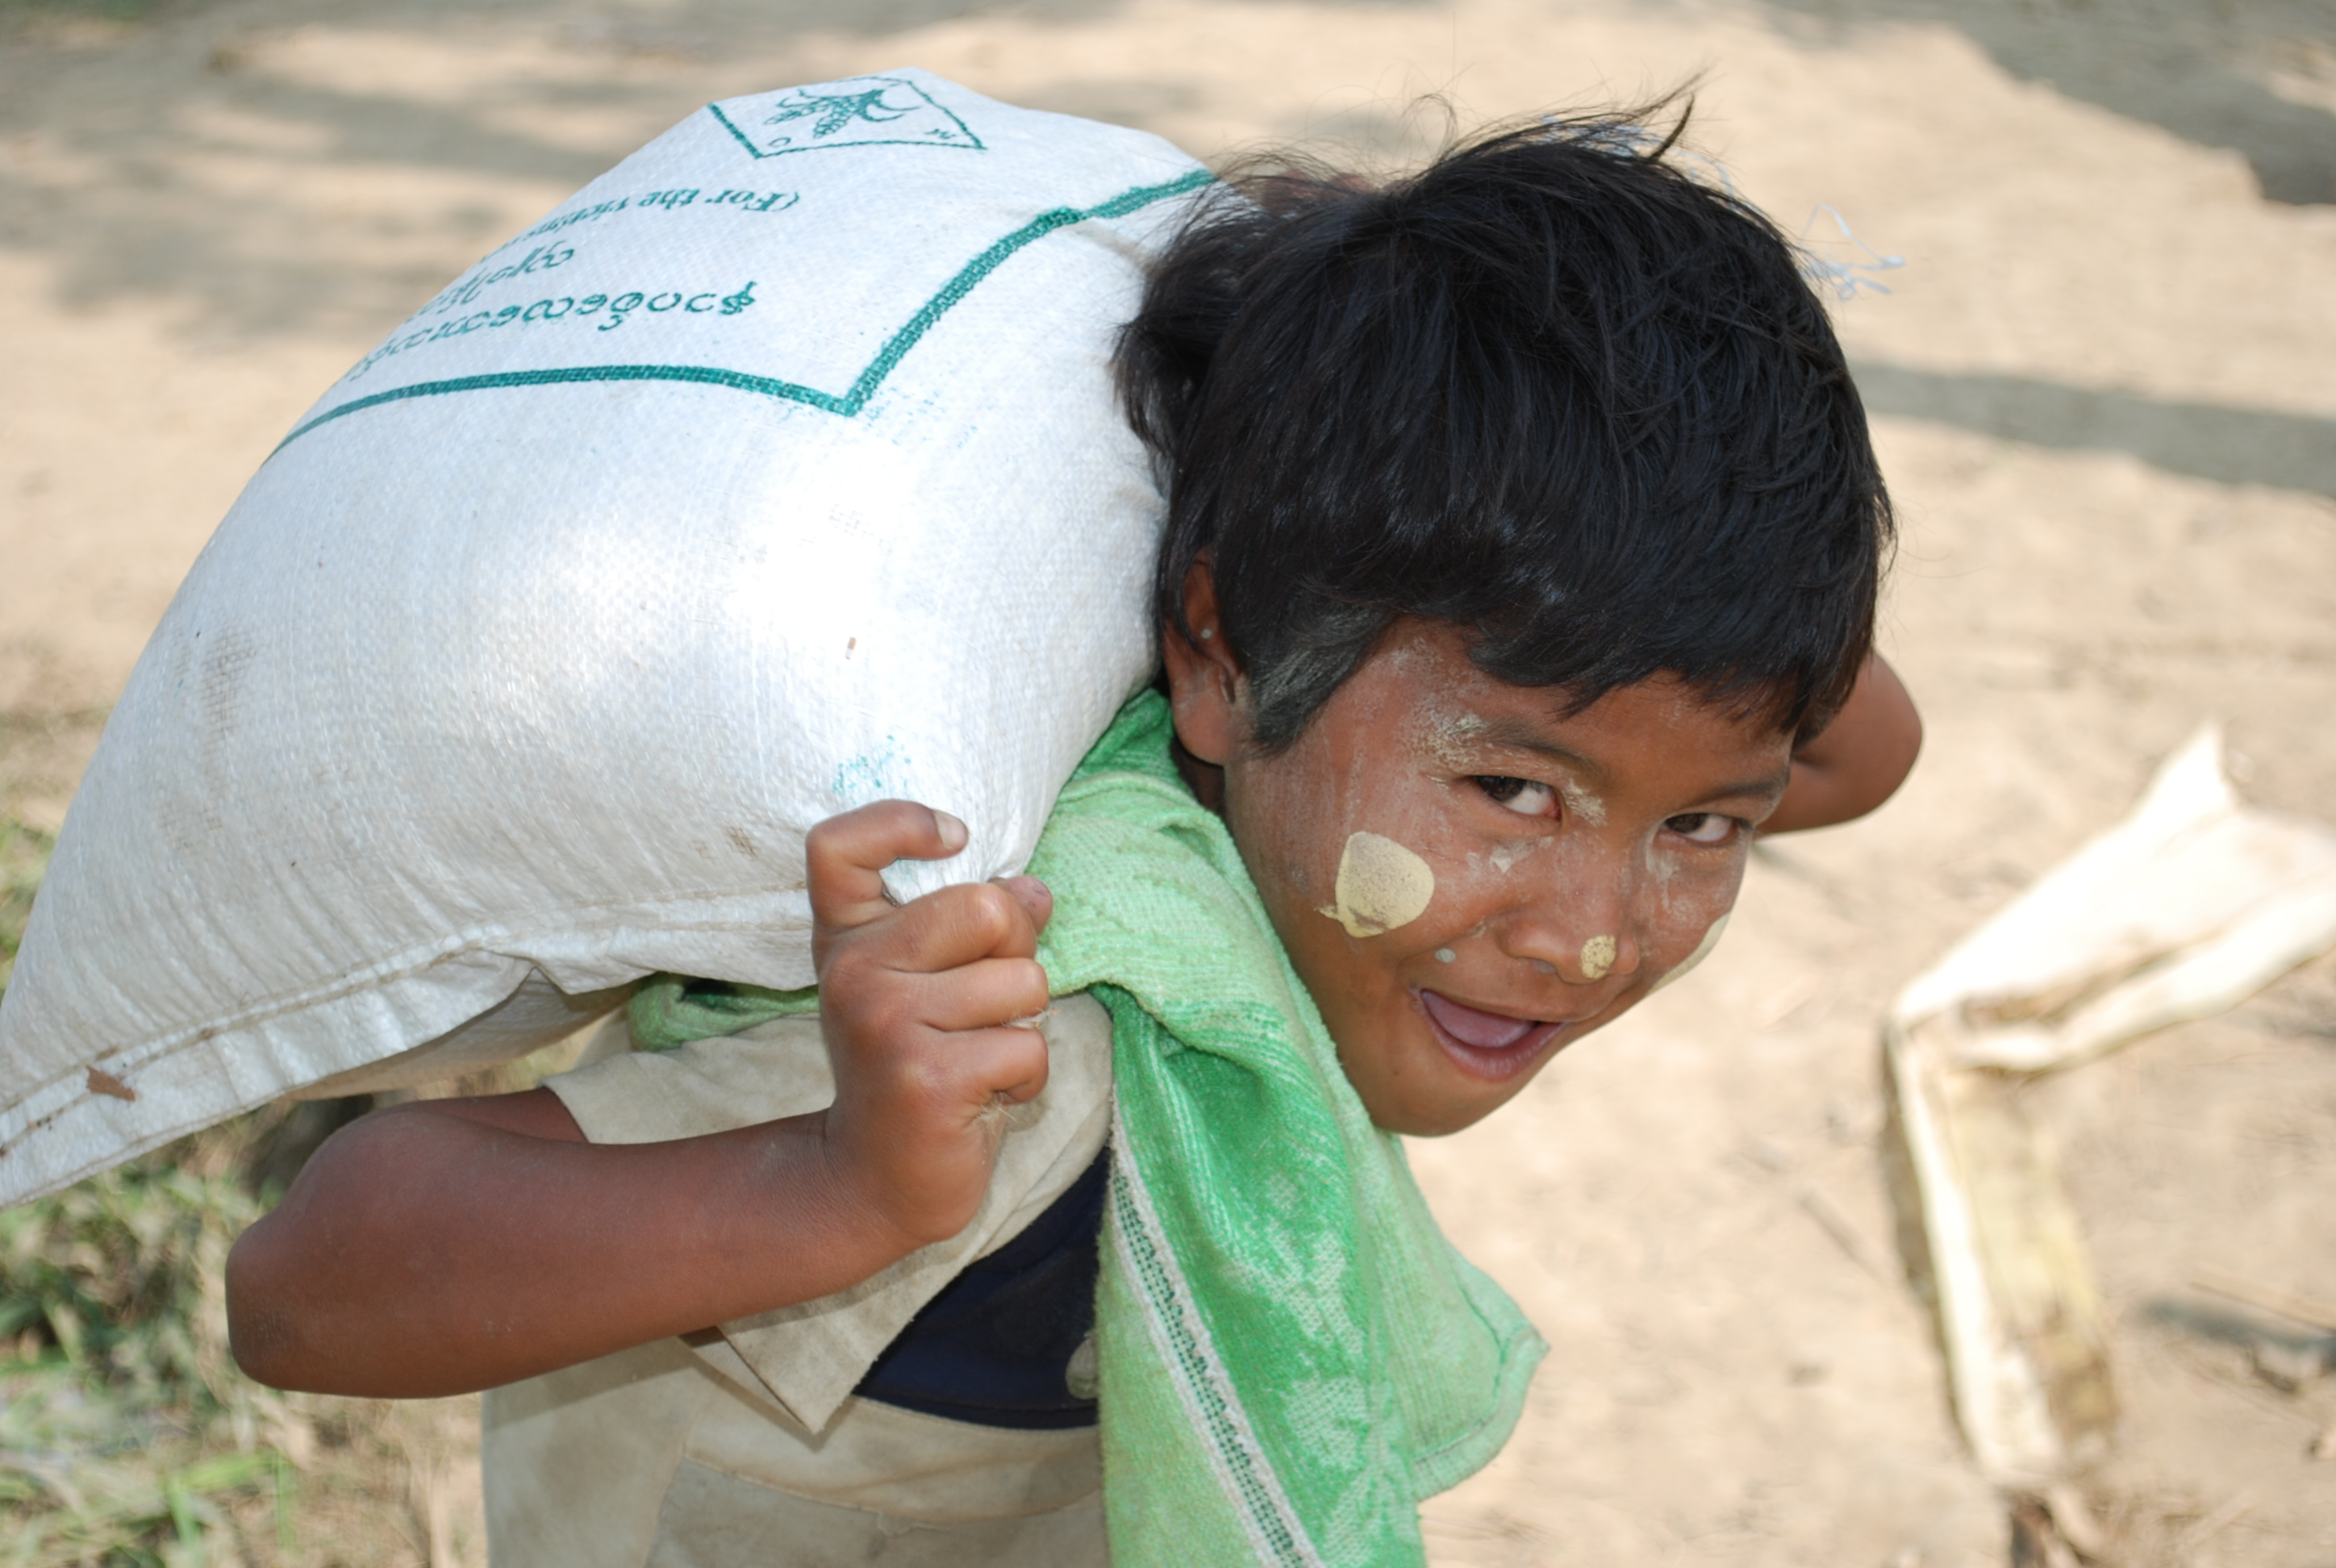 Following a food aid distribution, a young boy happily carries a bag of rice home. With emergency funding from the European Commission Humanitarian Aid department (ECHO), the UN World Food Programme reports it has reached nearly one million people in the